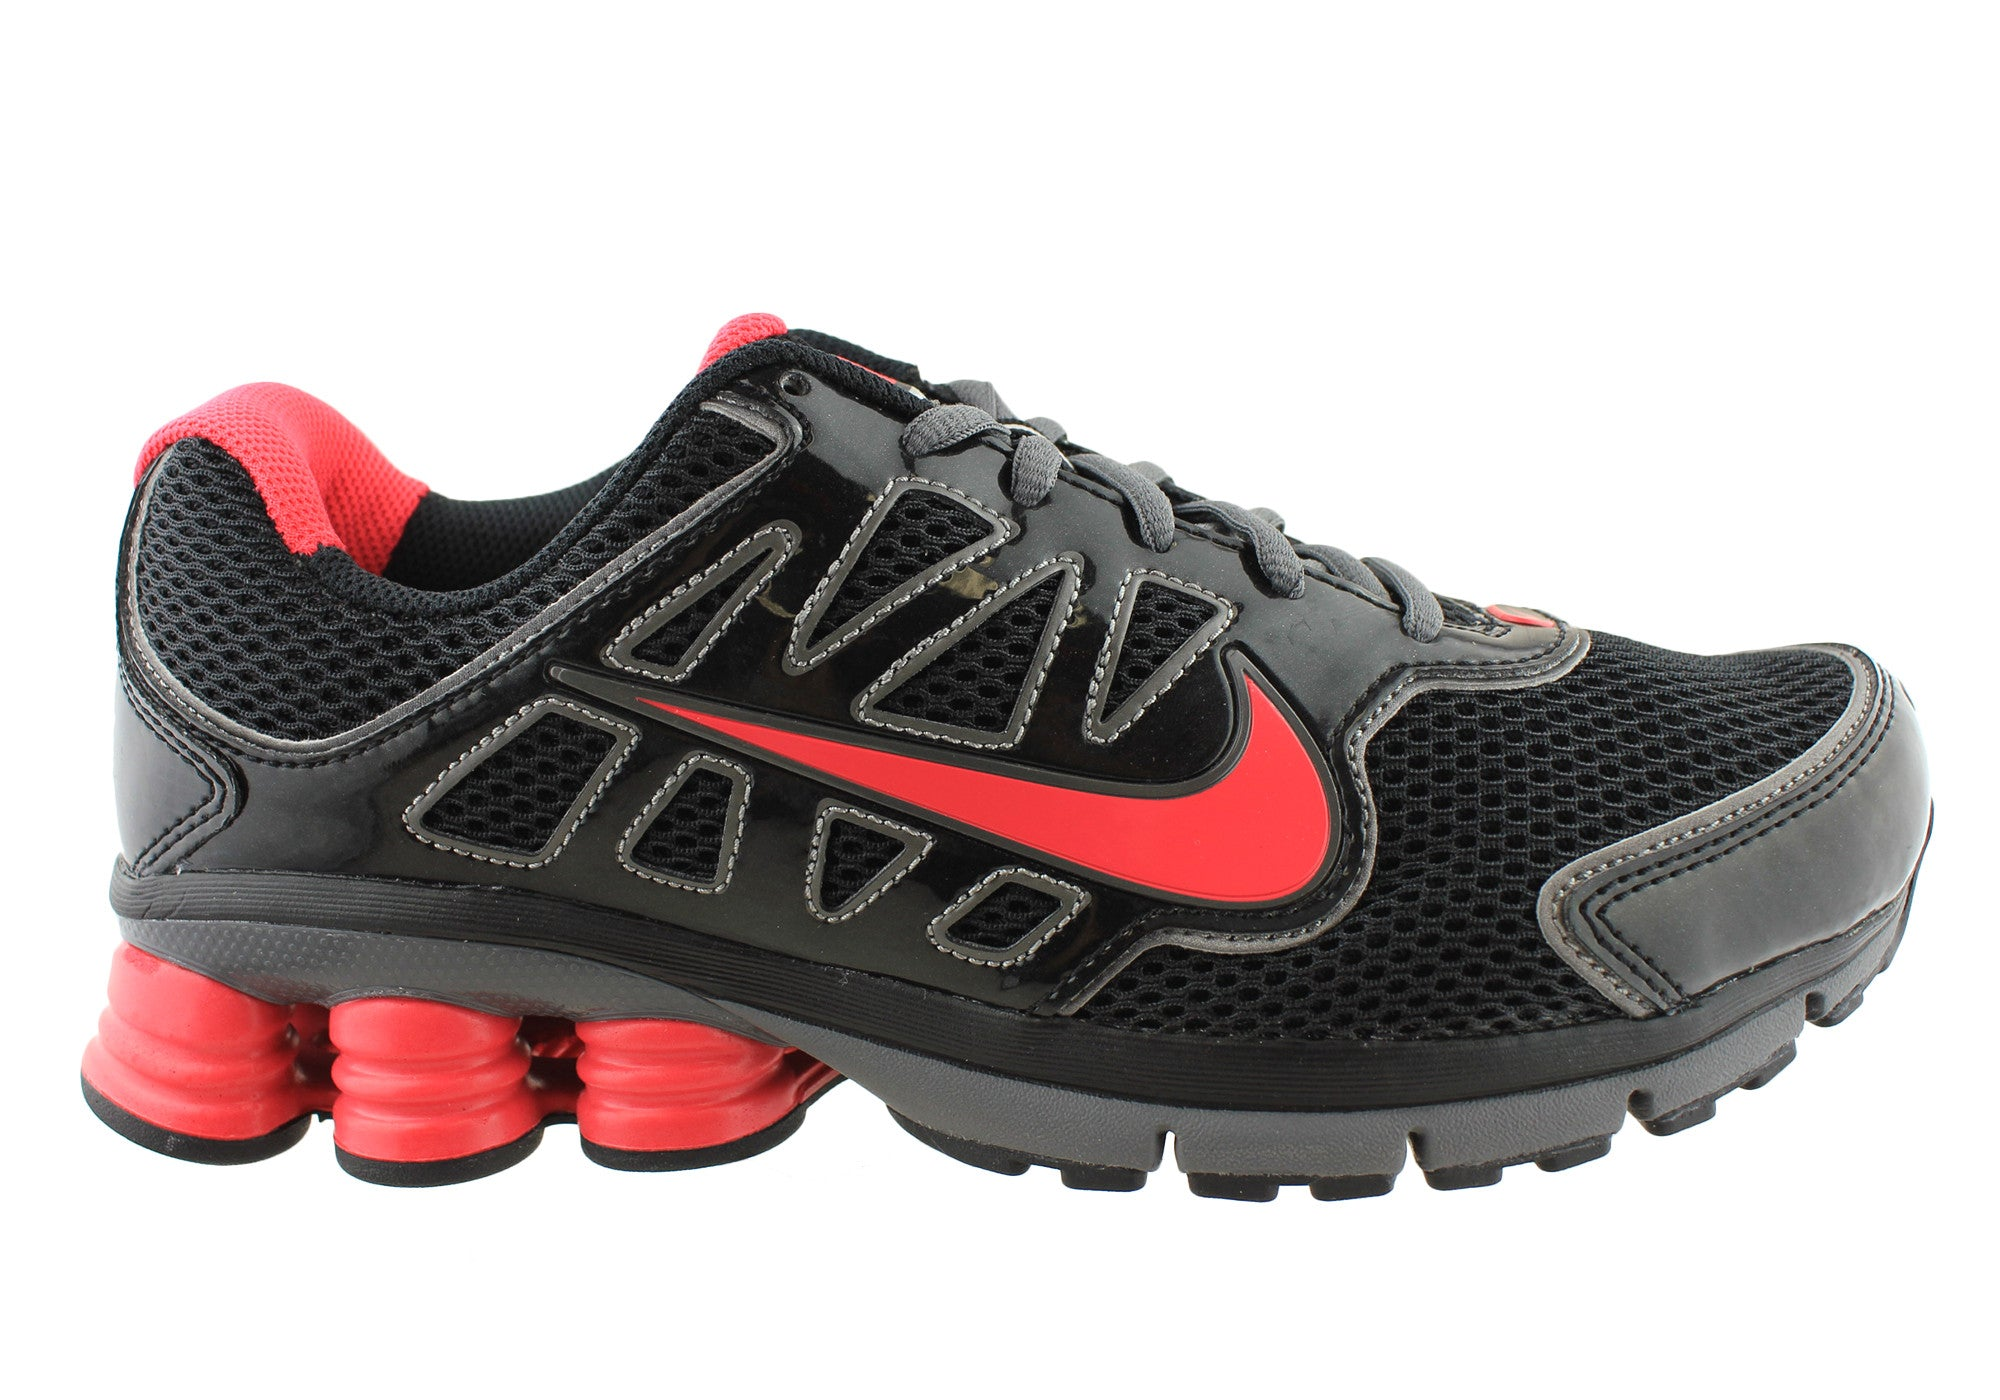 New-Nike-Shox-Qualify-2-Womens-Running-Sport-Shoes